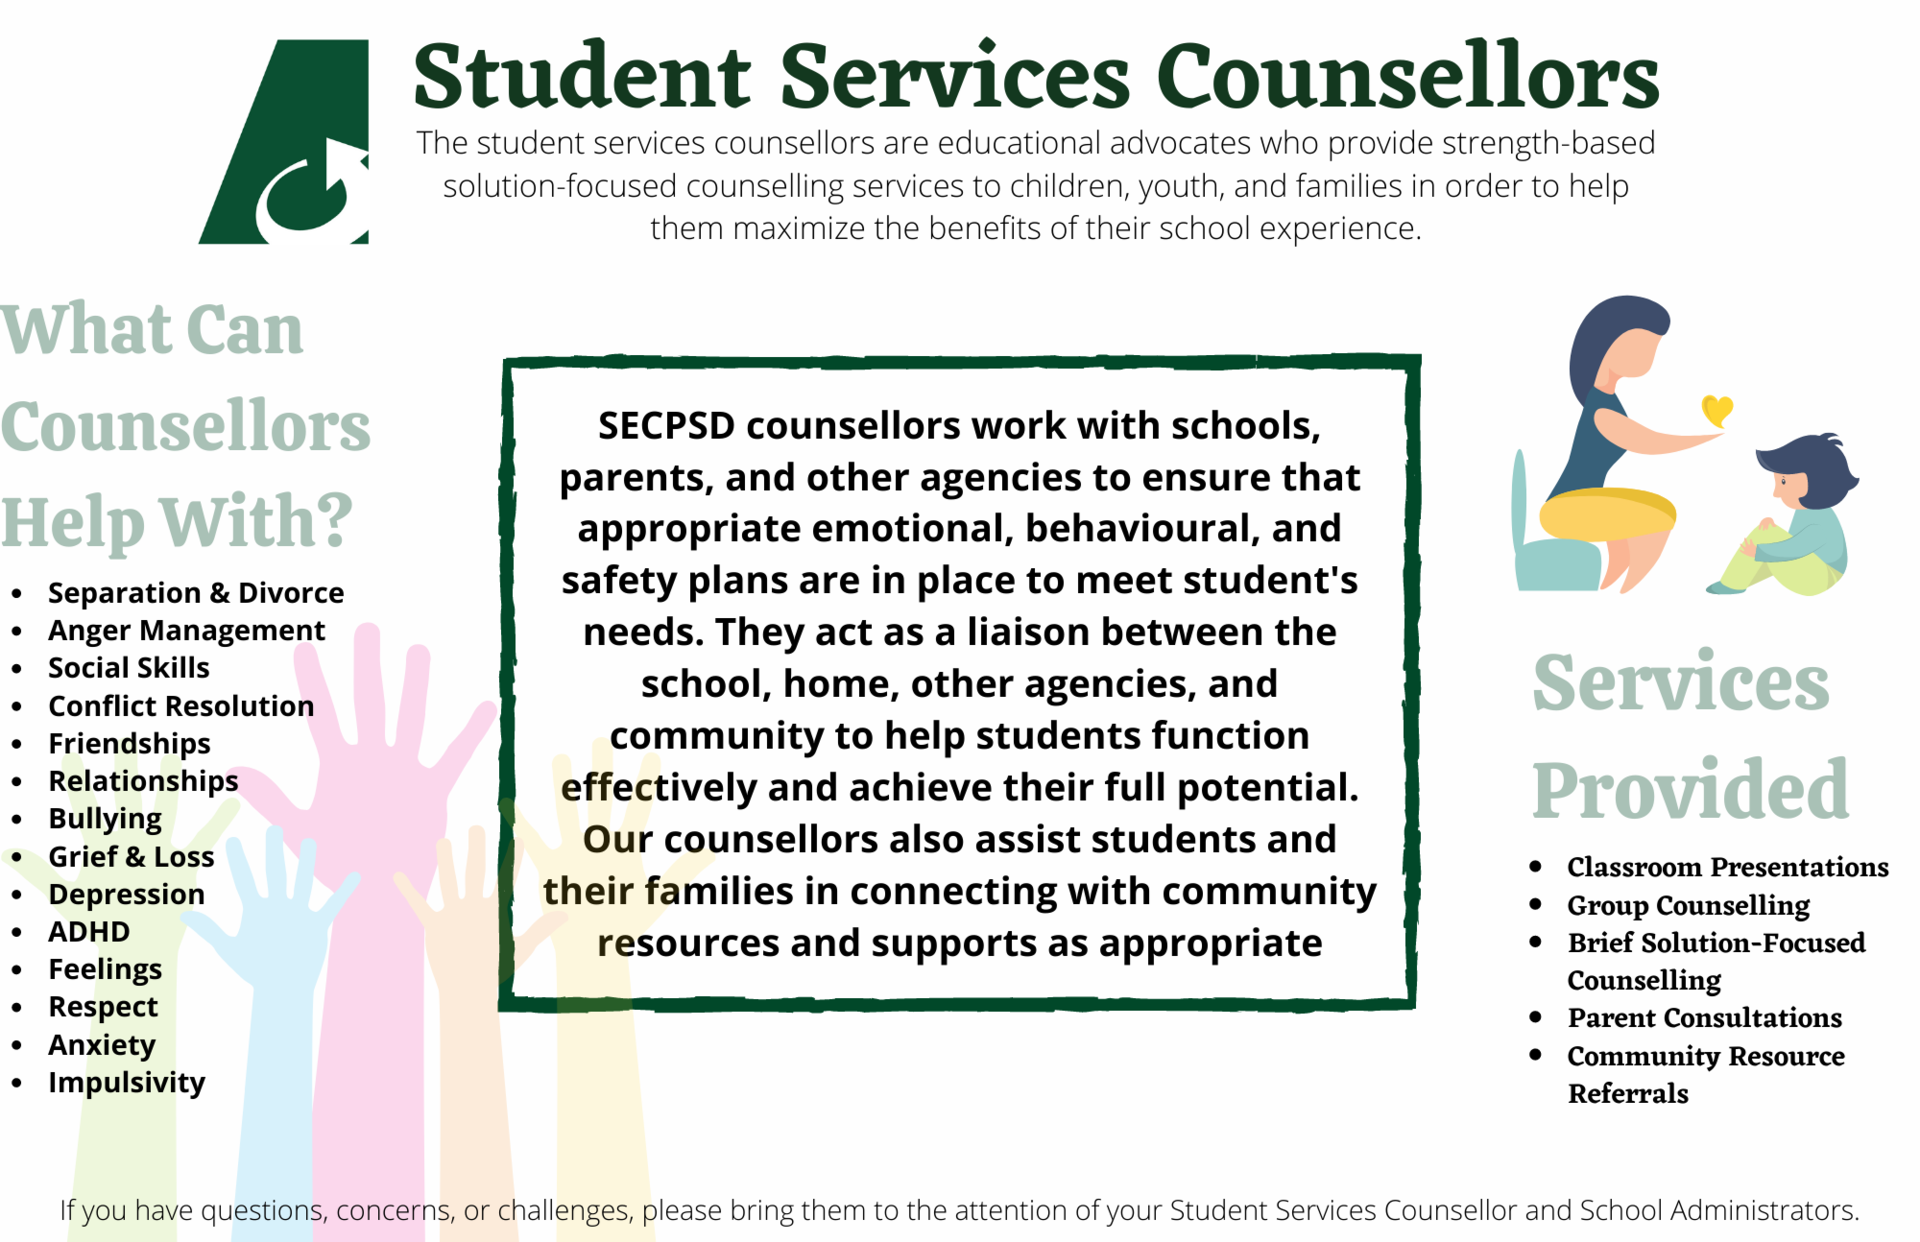 Student Services Counsellors